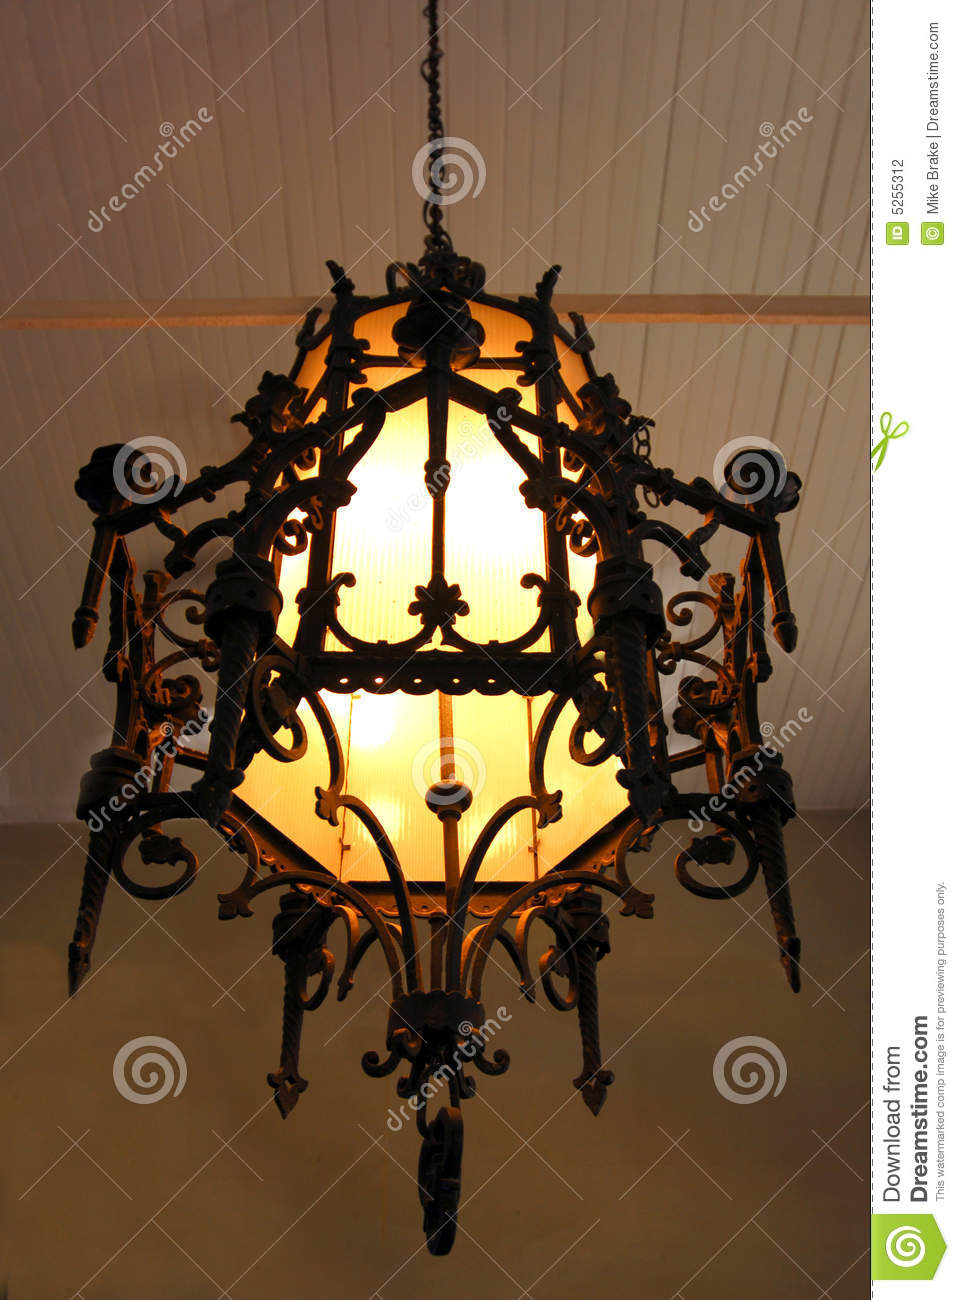 Antique mexican chandelier stock photo image of furnishing 5255312 antique mexican chandelier arubaitofo Image collections